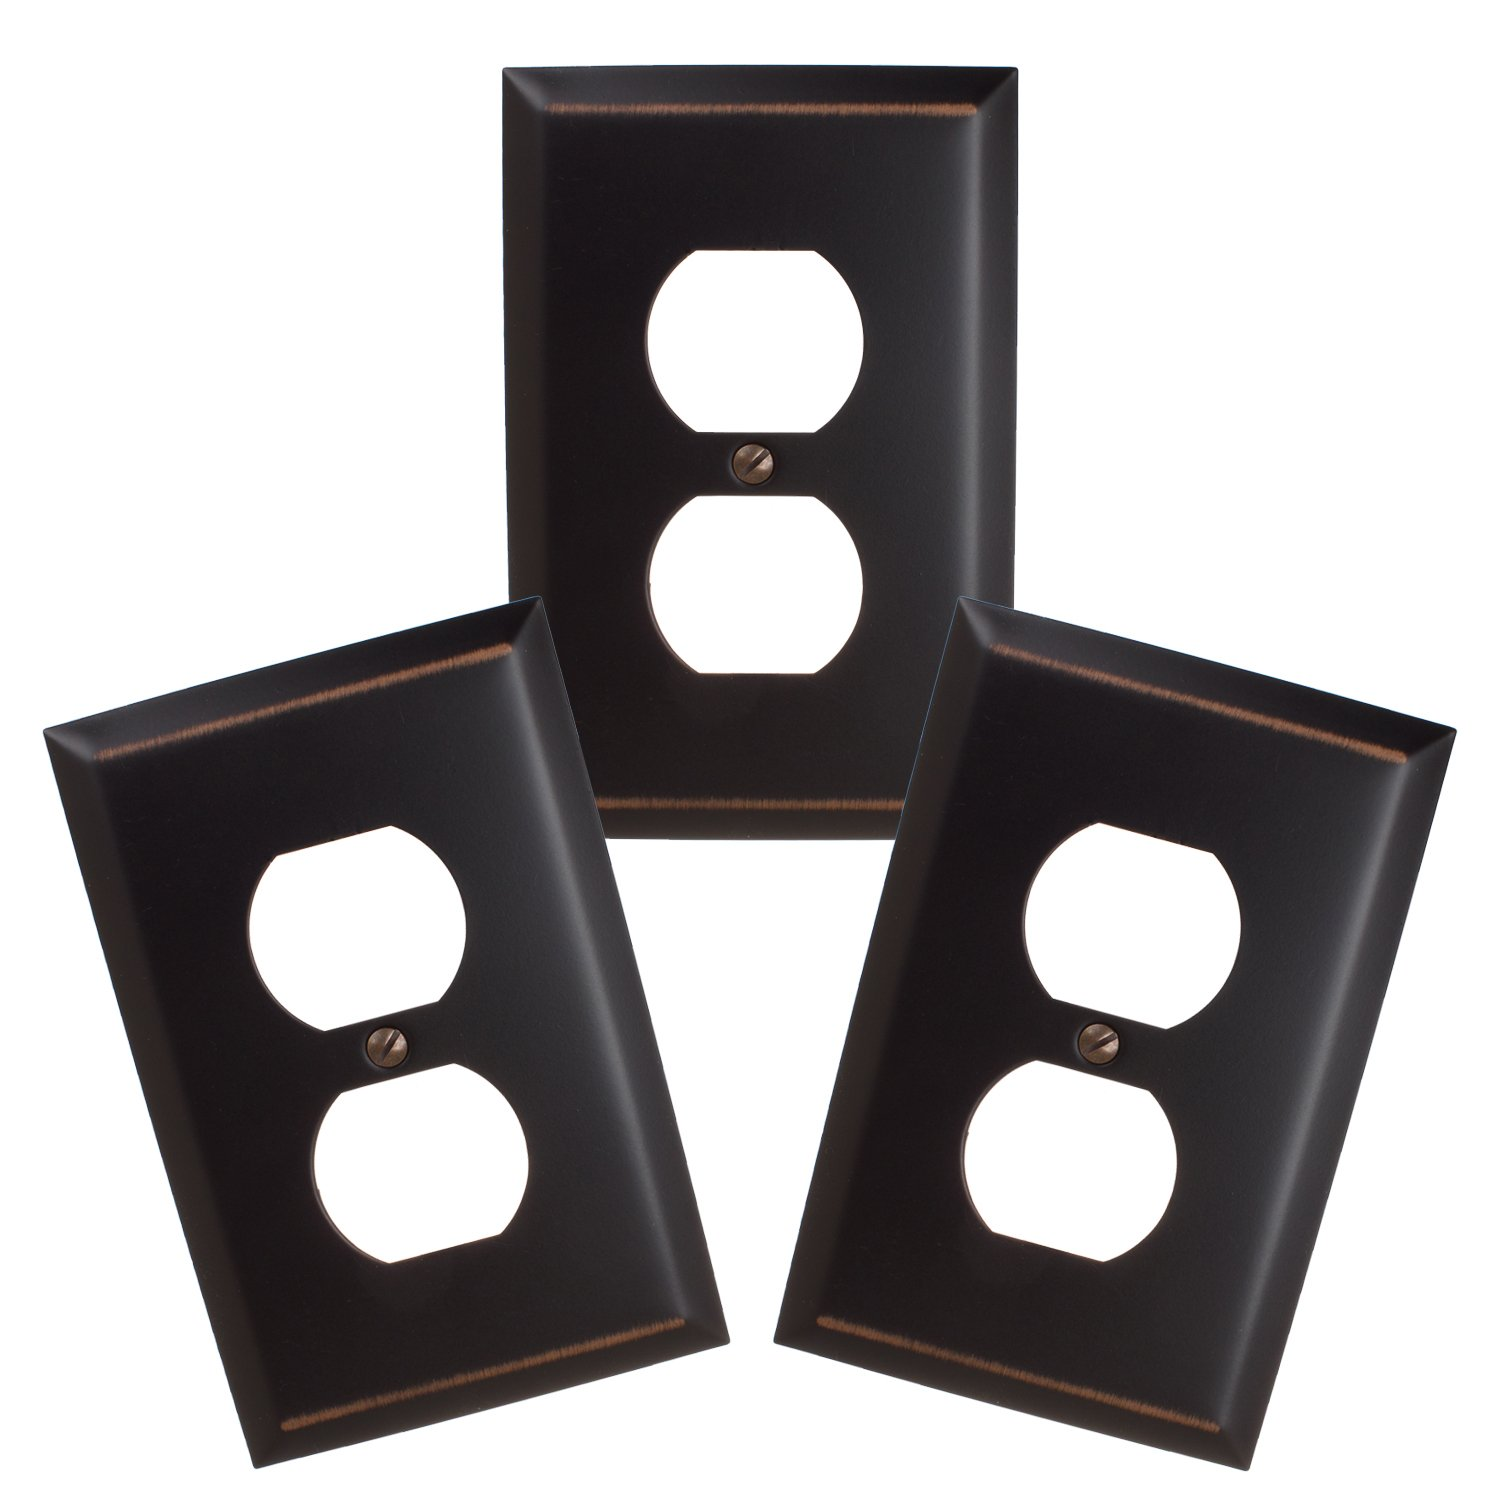 GlideRite Hardware 1-Gang Single Duplex Outlet Classic Square Beveled Wall Plate Covers (Single Duplex - 3 Pack, Oil Rubbed Bronze)